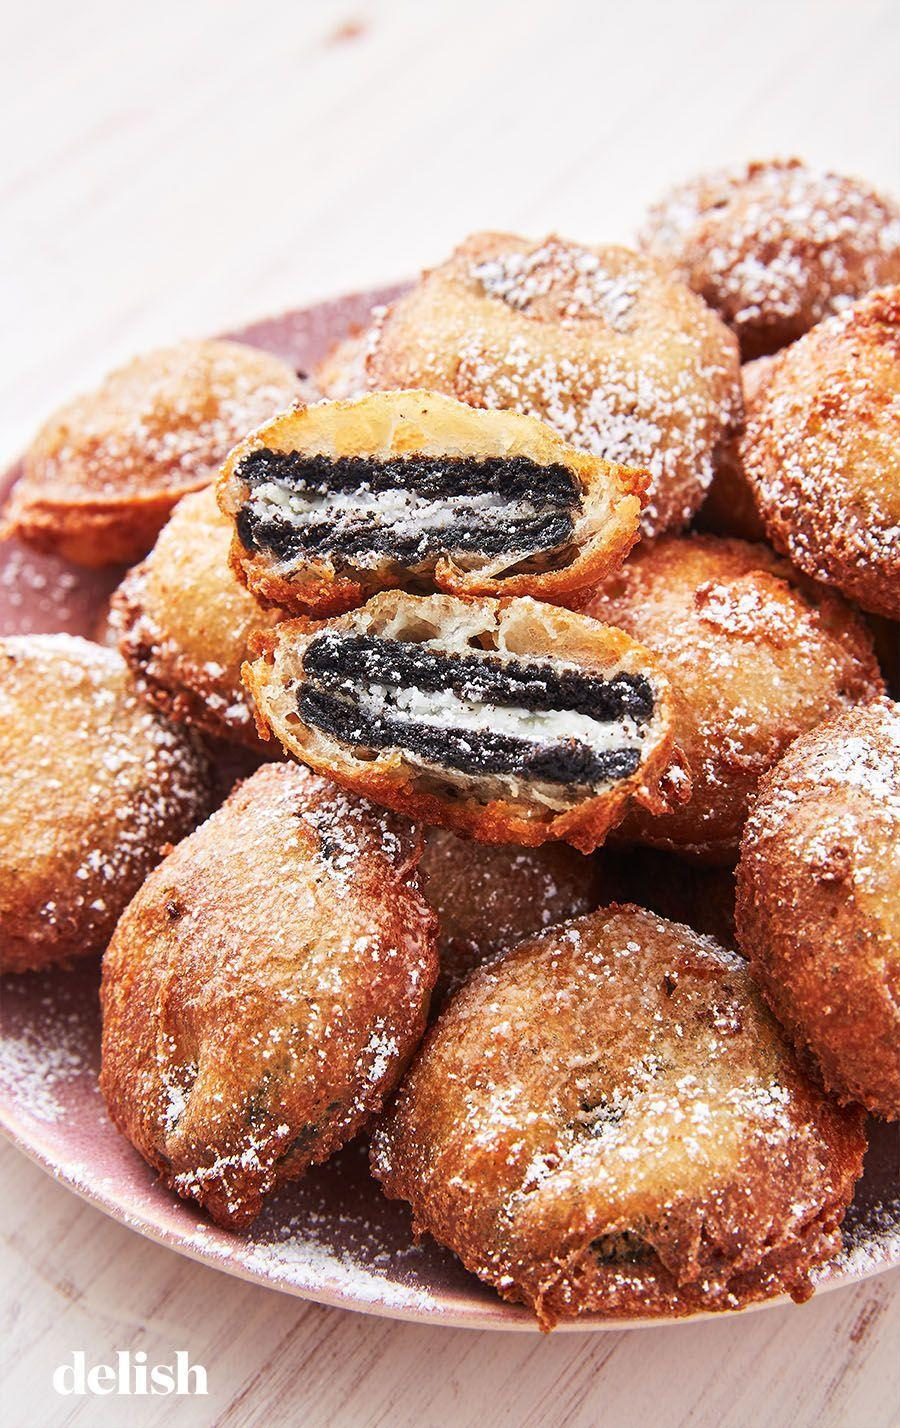 "<p>This carnival favorite will be the star of your Halloween party.</p><p>Get the recipe from <a href=""https://www.delish.com/cooking/recipe-ideas/a27572812/best-deep-fried-oreos-recipe/"" rel=""nofollow noopener"" target=""_blank"" data-ylk=""slk:Delish"" class=""link rapid-noclick-resp"">Delish</a>.</p>"